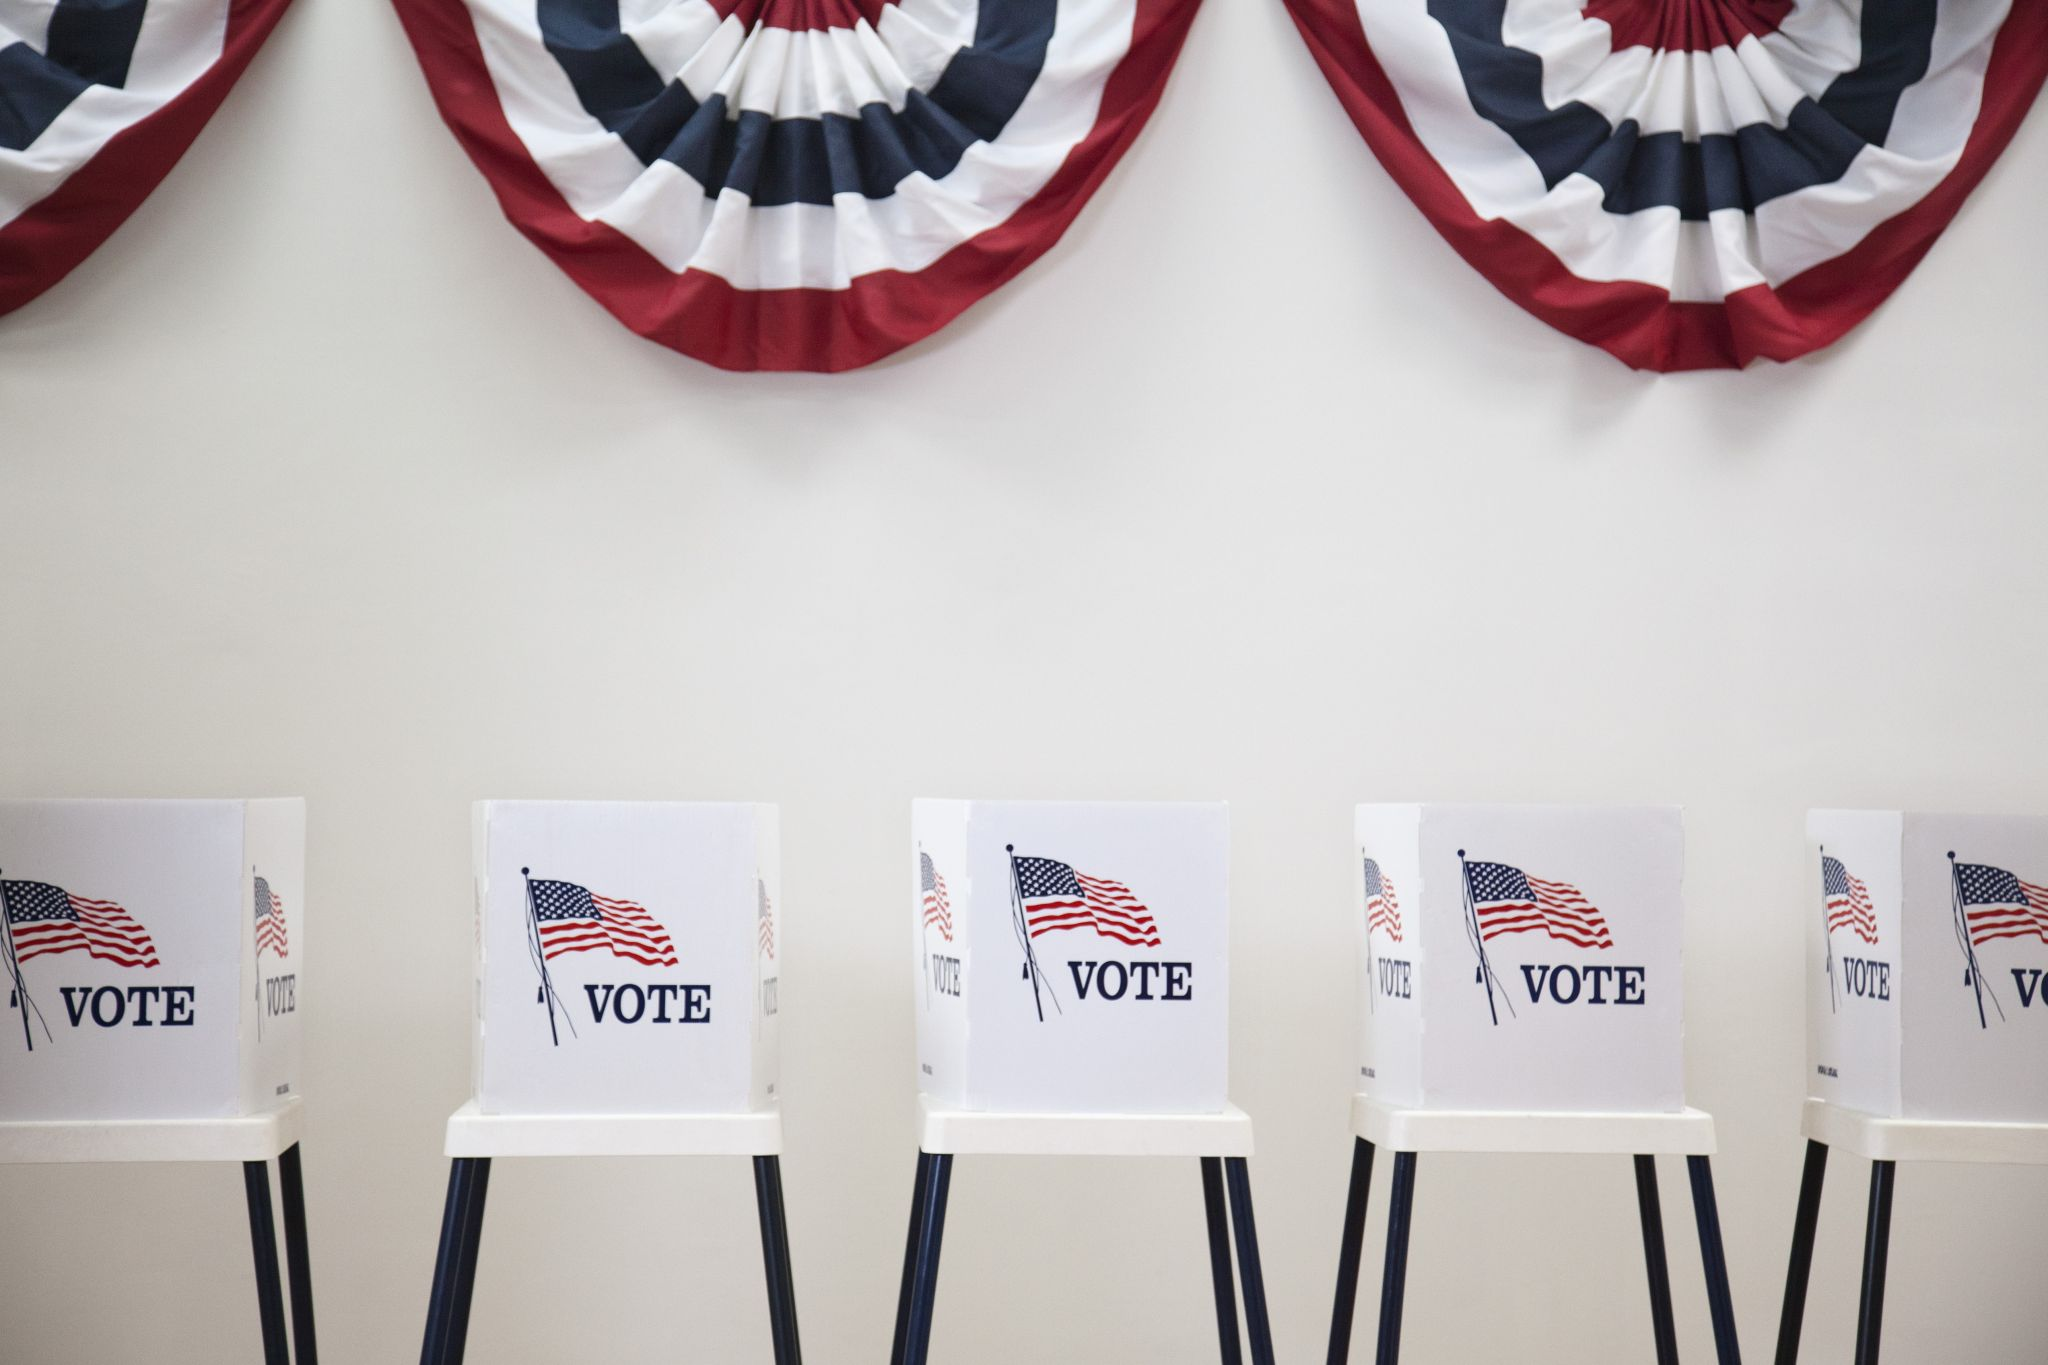 The measures and races to pay attention to on Bay Area ballots